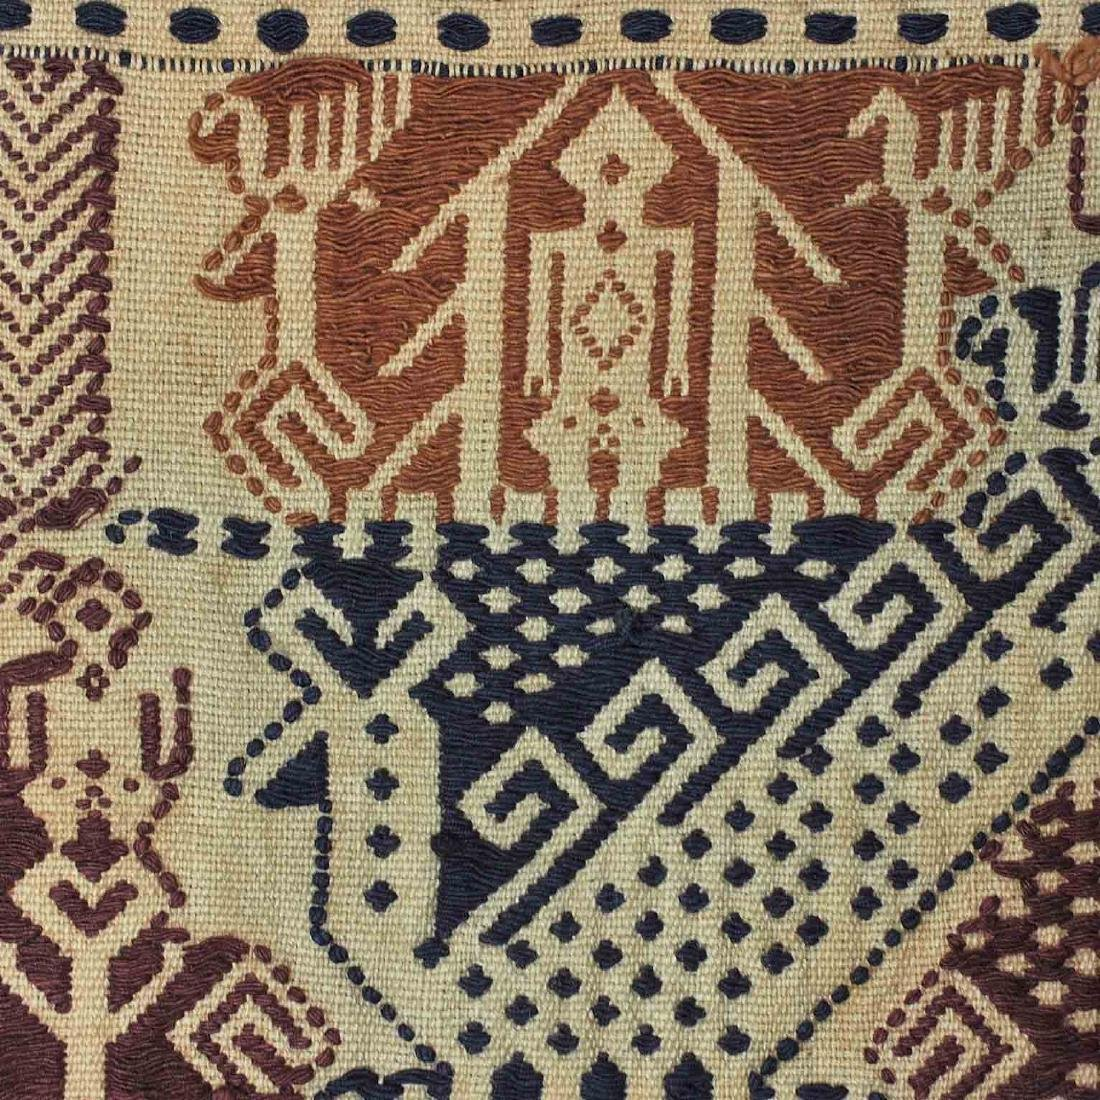 Old Carpet with Typical Lampung Design, Lampung - 5